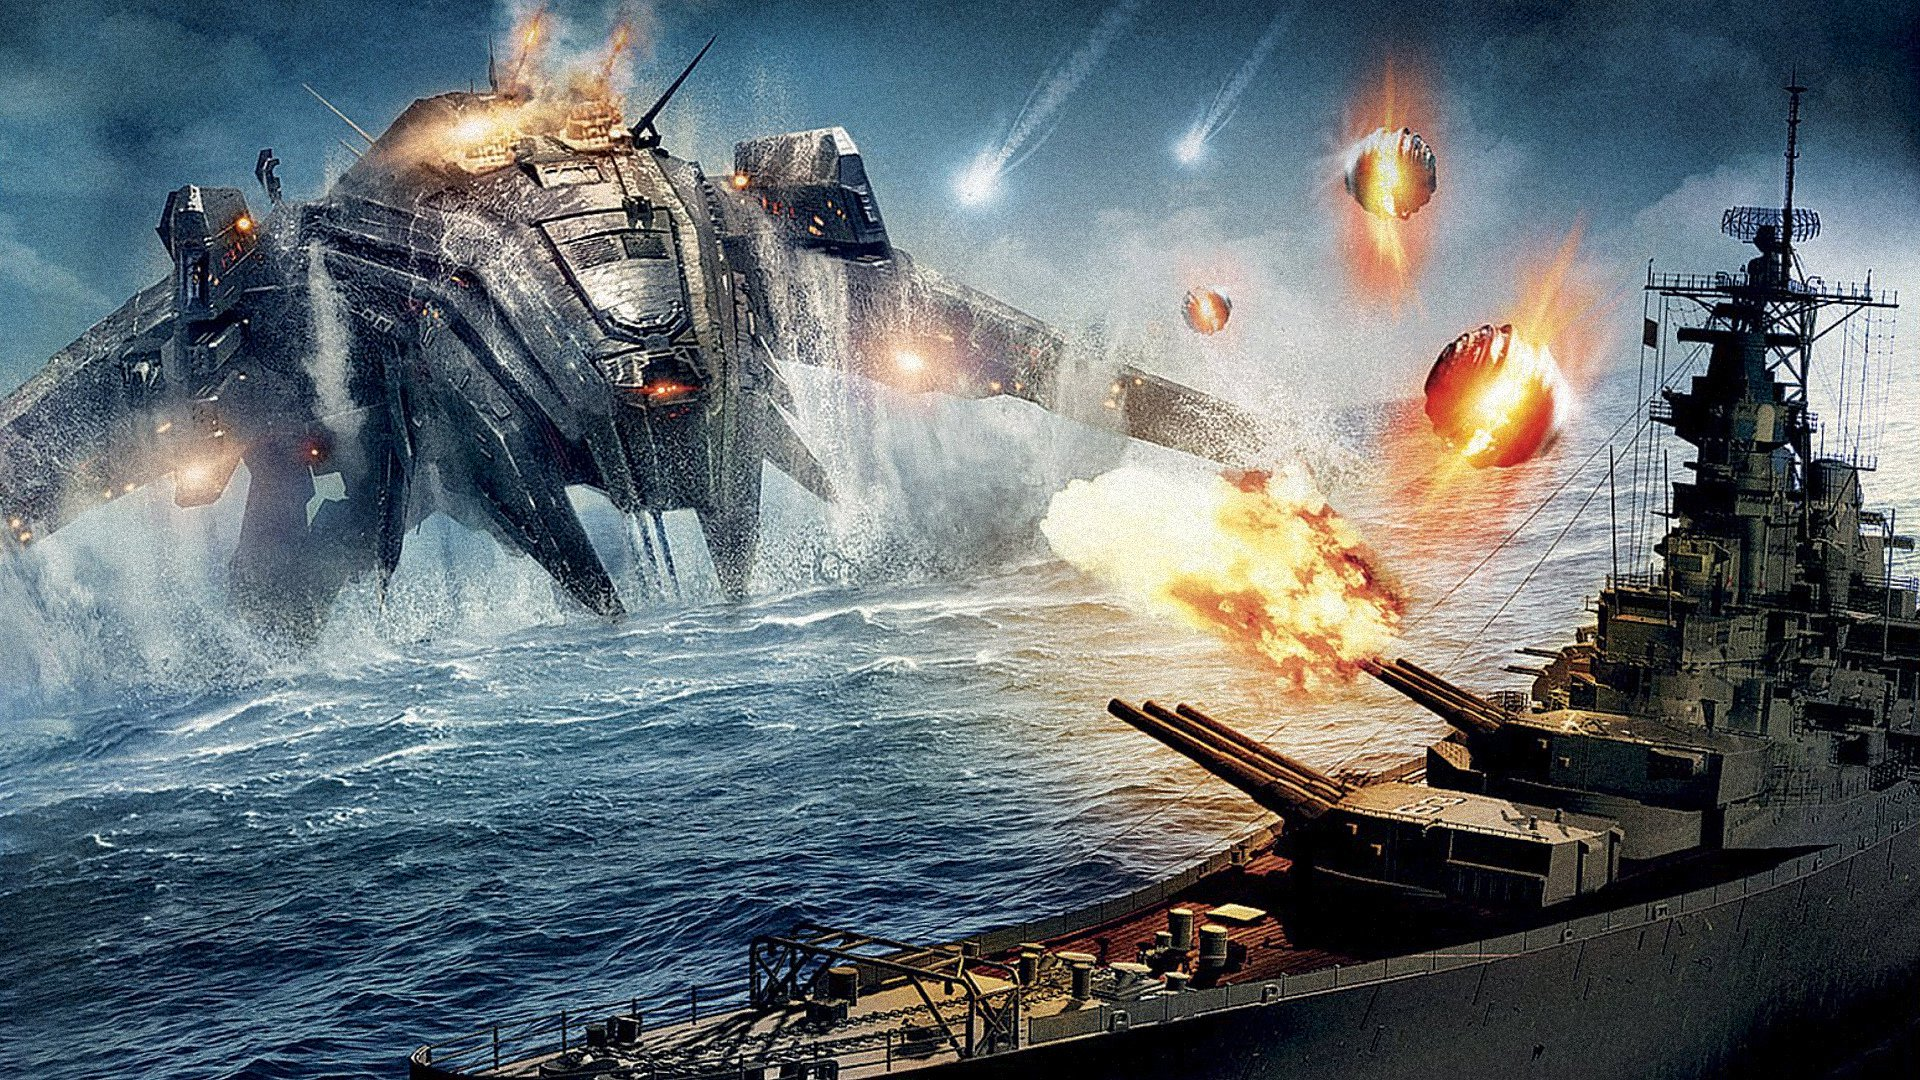 battleship wallpapers sparkly photo - photo #11